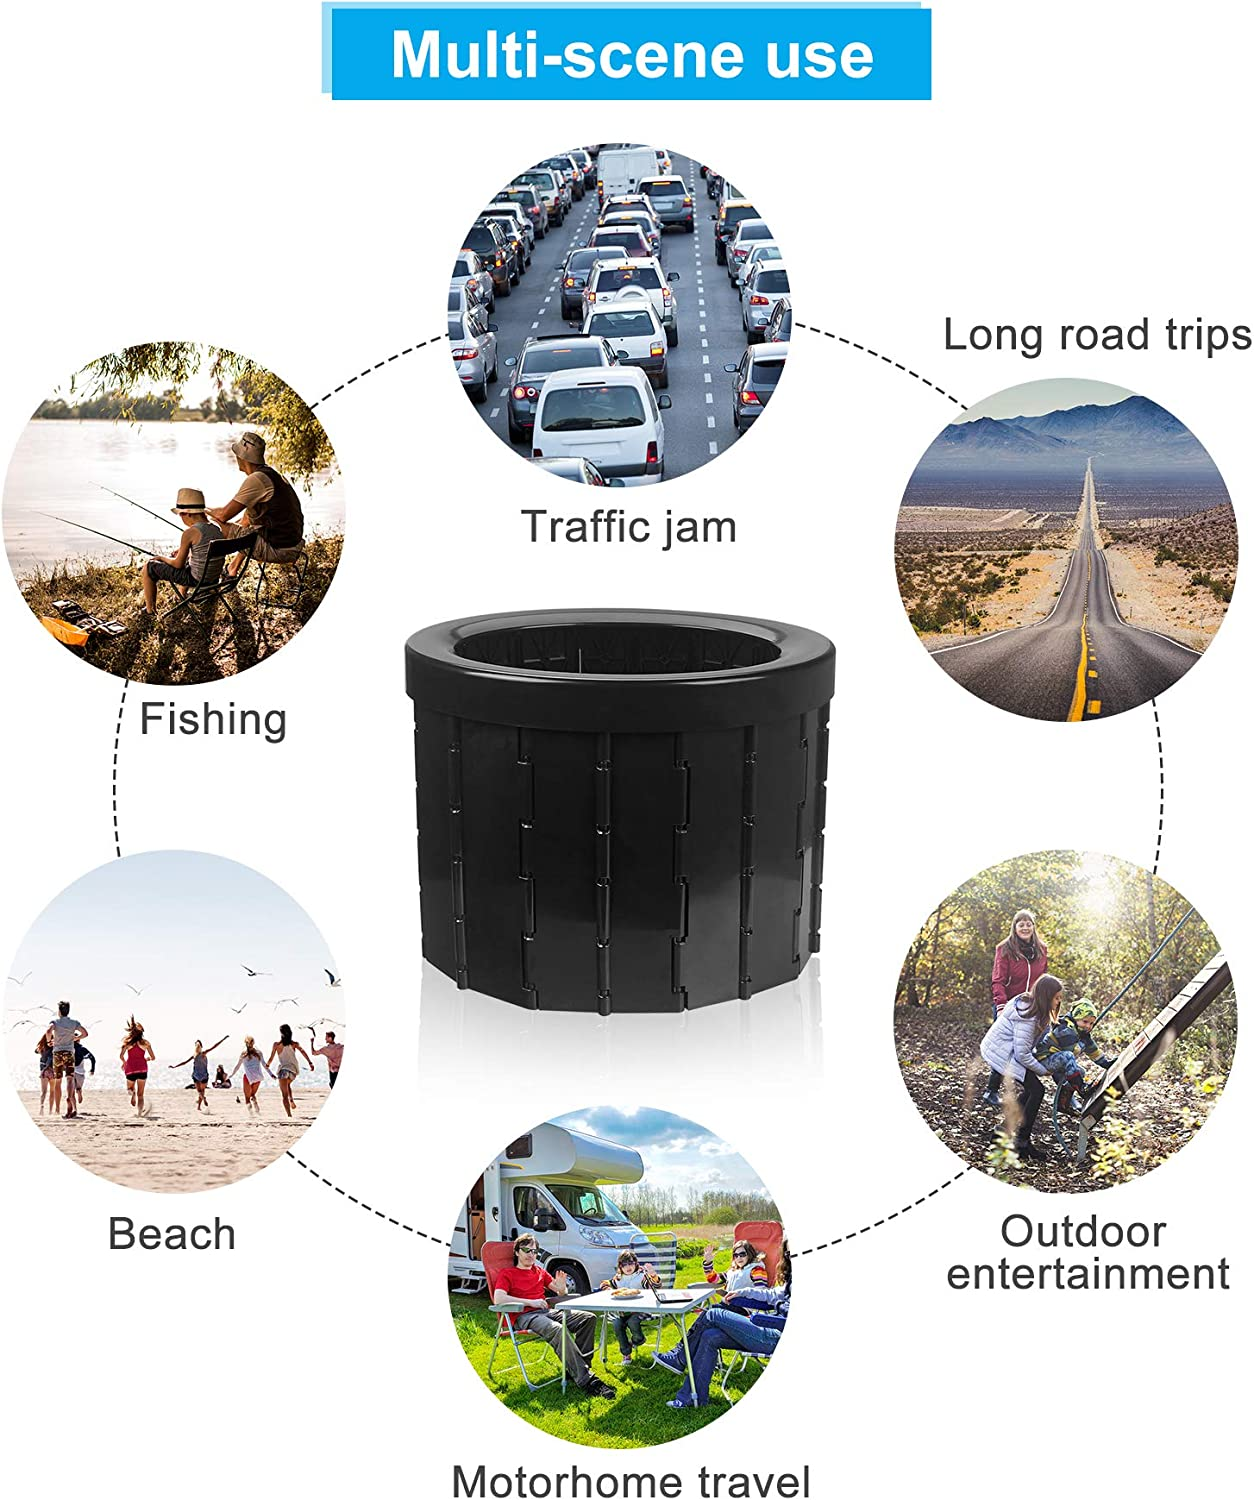 Trips Hiking Traffic Jam Outdoor Esthesia Portable Toilet Camping Toilet Folding ABS Plastic Car Travel Potty for Camp Boating